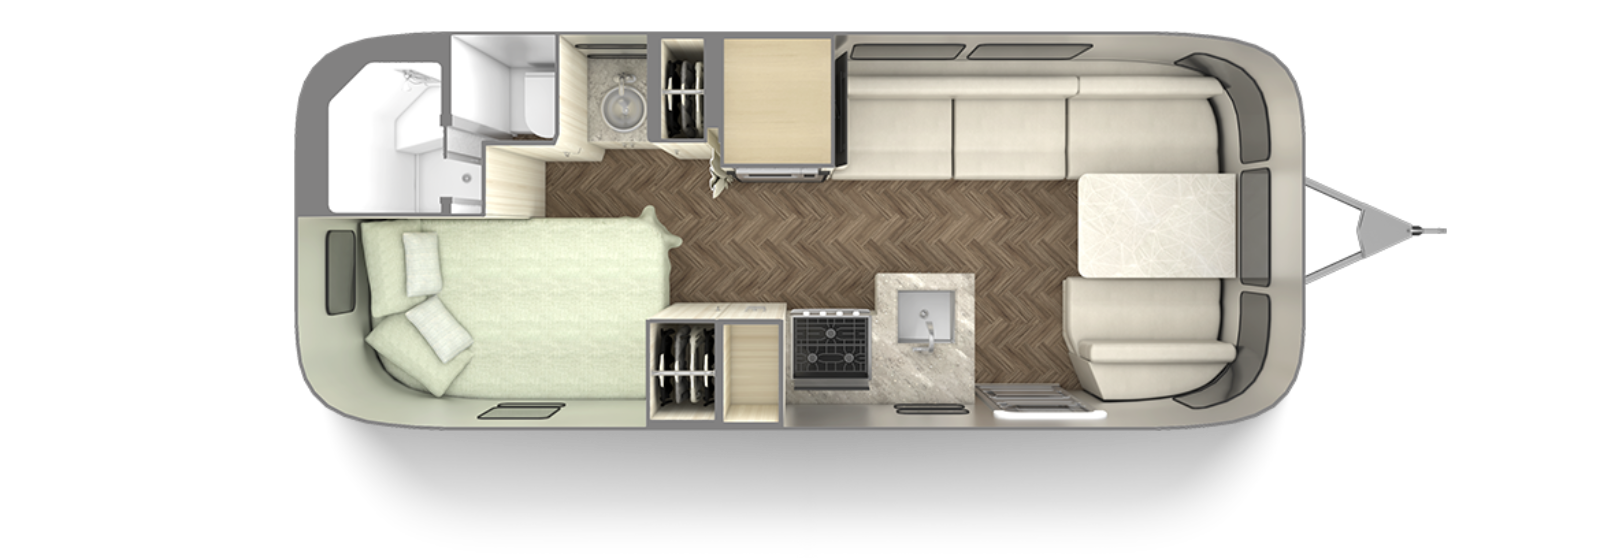 2021-Airstream-International-23CB-floor-plan-seashell